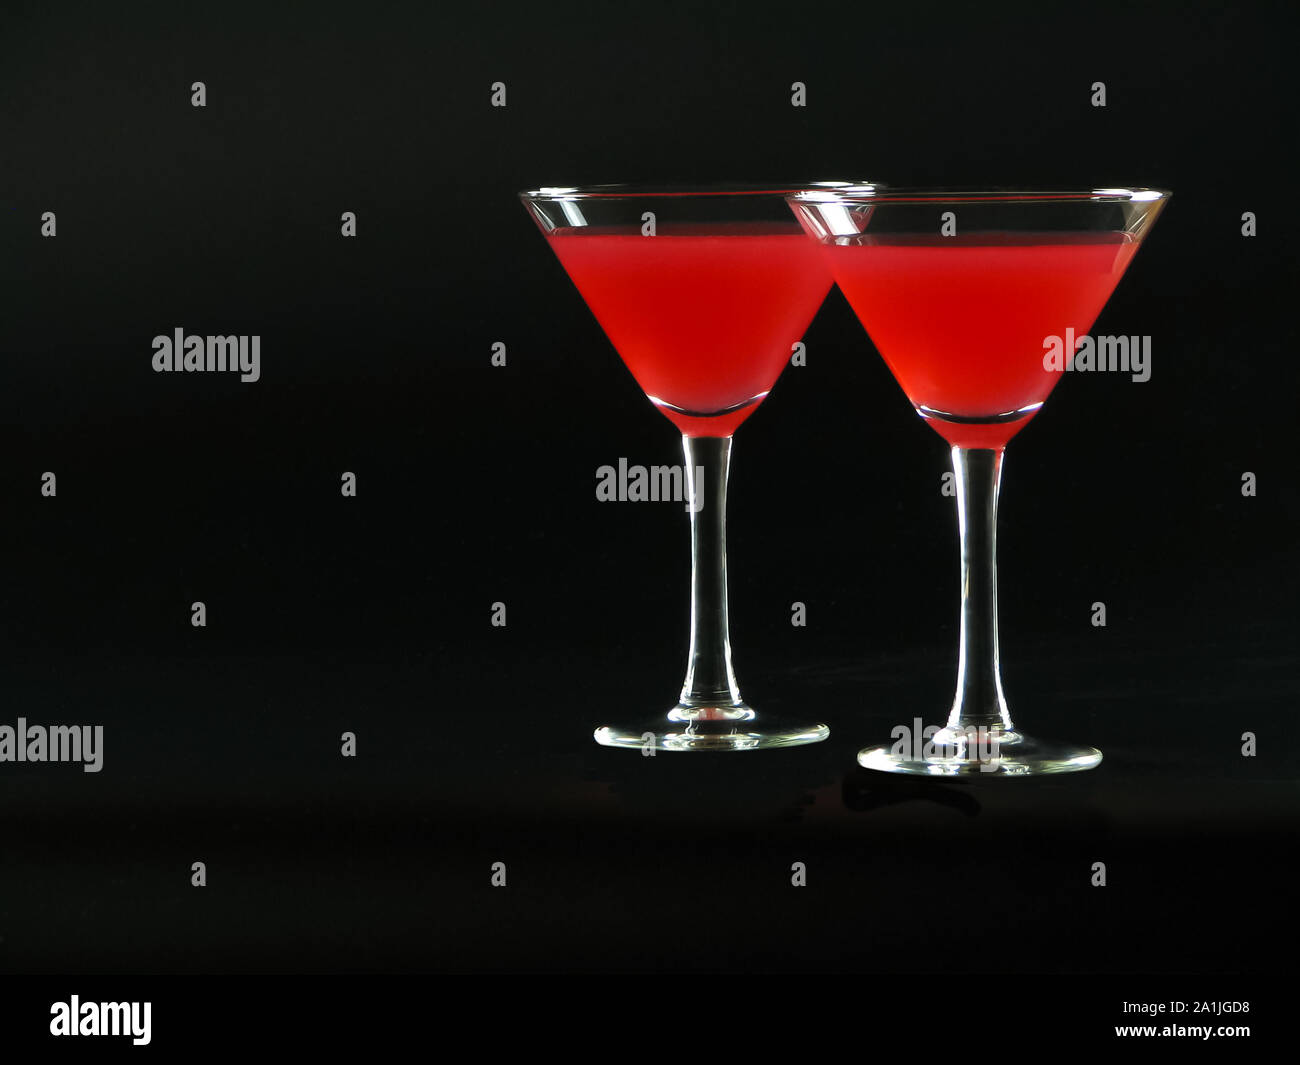 Classic Bacardi alcoholic cocktail of bright red color from white rum, lime juice and grenadine, in two conical cocktail glass on a dark background Stock Photo